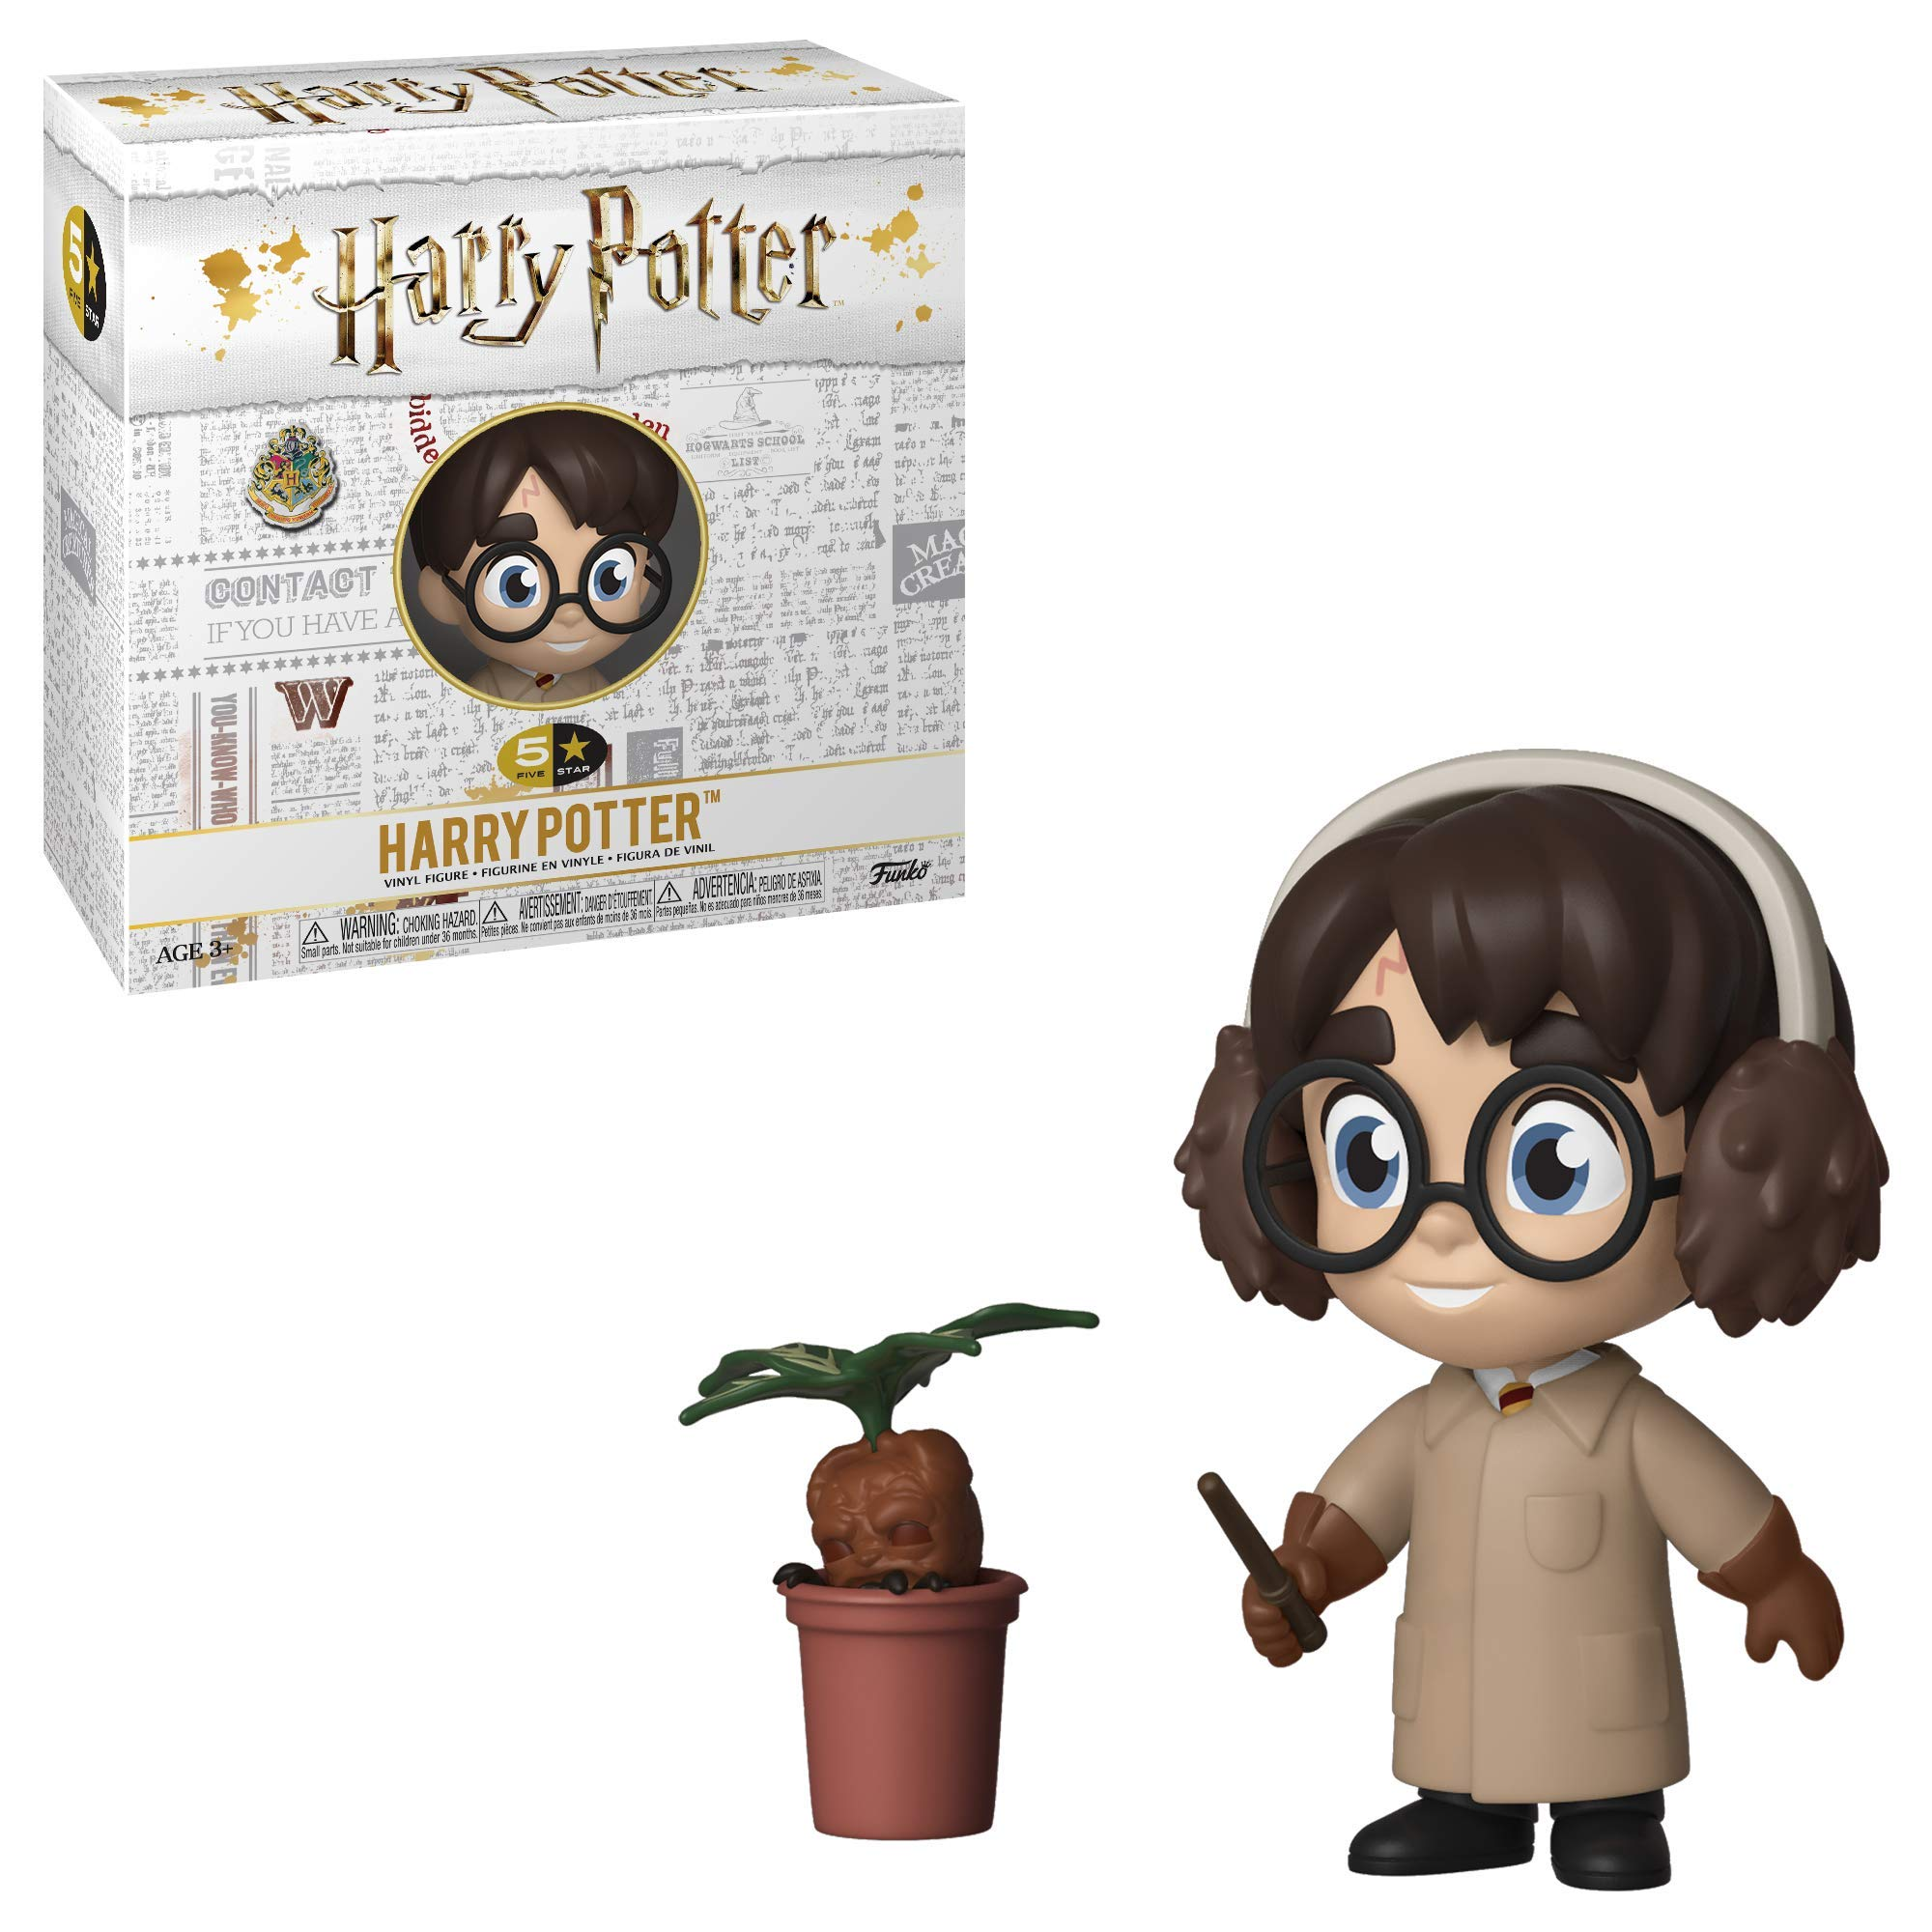 Funko Five Star Harry Potter with Quidditch Robes and Broom Exclusive Figure